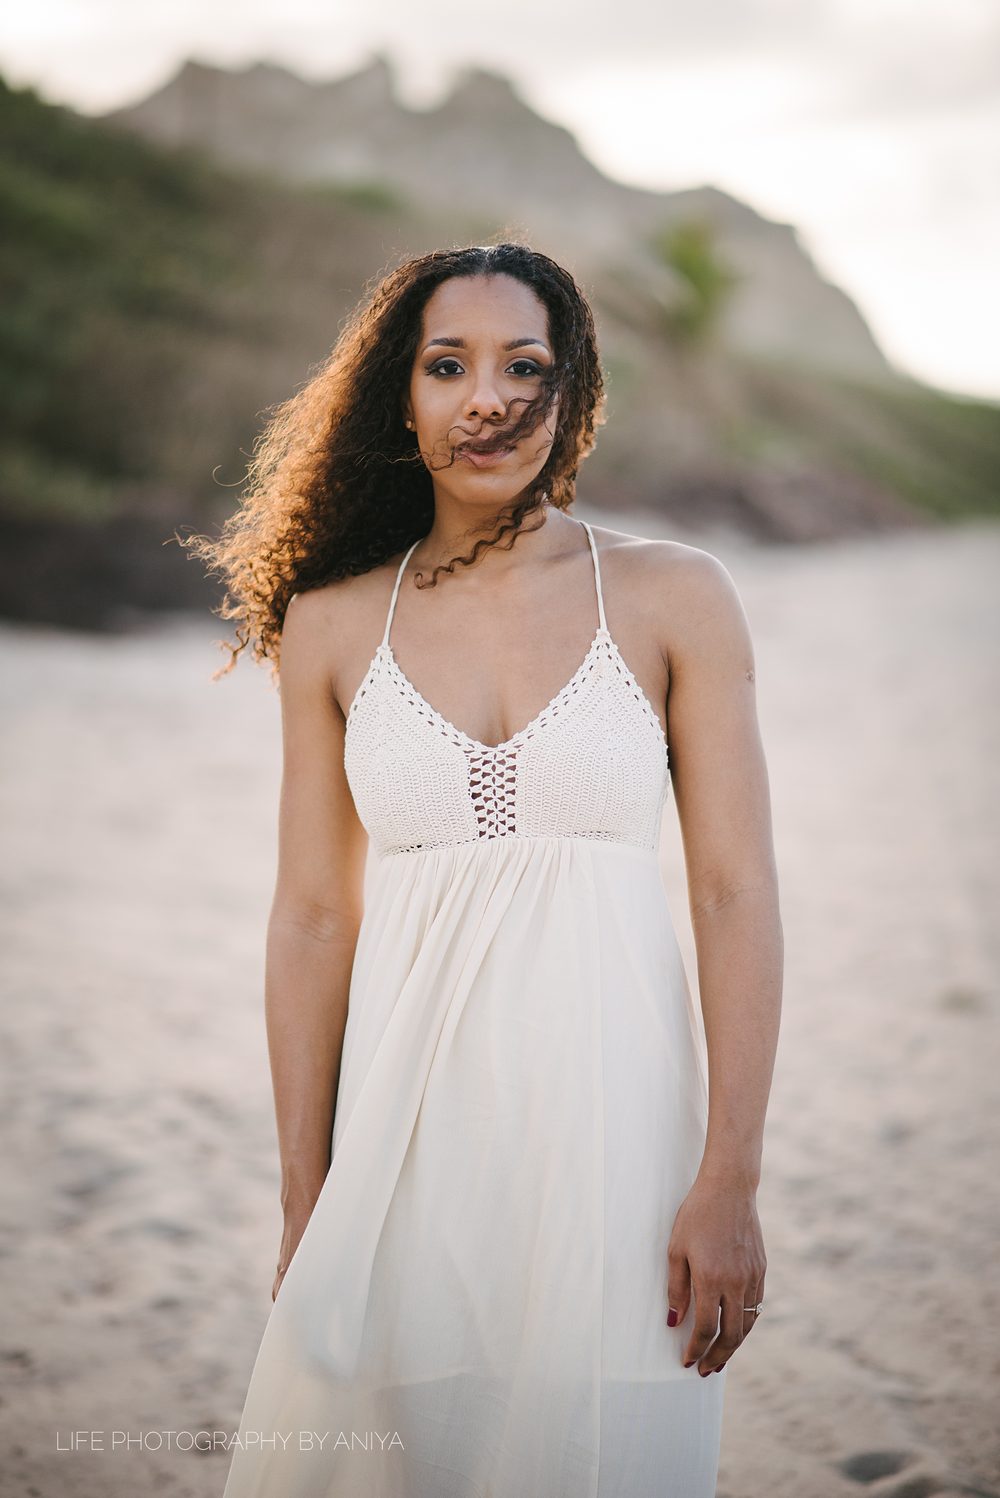 barbados-wedding-photography-engagement-kc-26.png